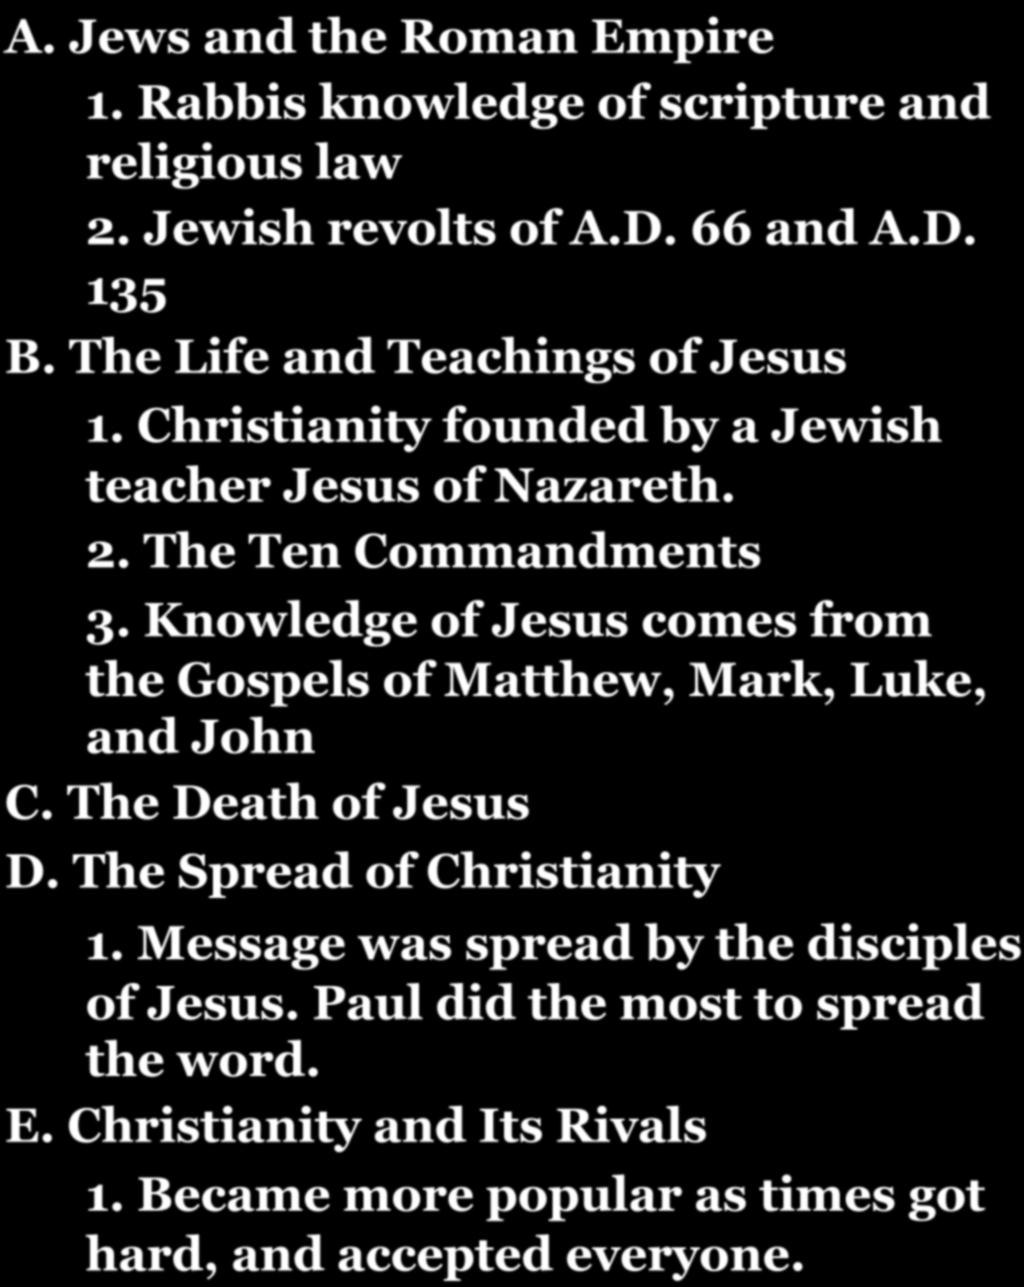 CHAPTER 7-SECTION 5: THE RISE OF CHRISTIANITY! A. Jews and the Roman Empire 1. Rabbis knowledge of scripture and religious law 2. Jewish revolts of A.D. 66 and A.D. 135 B.